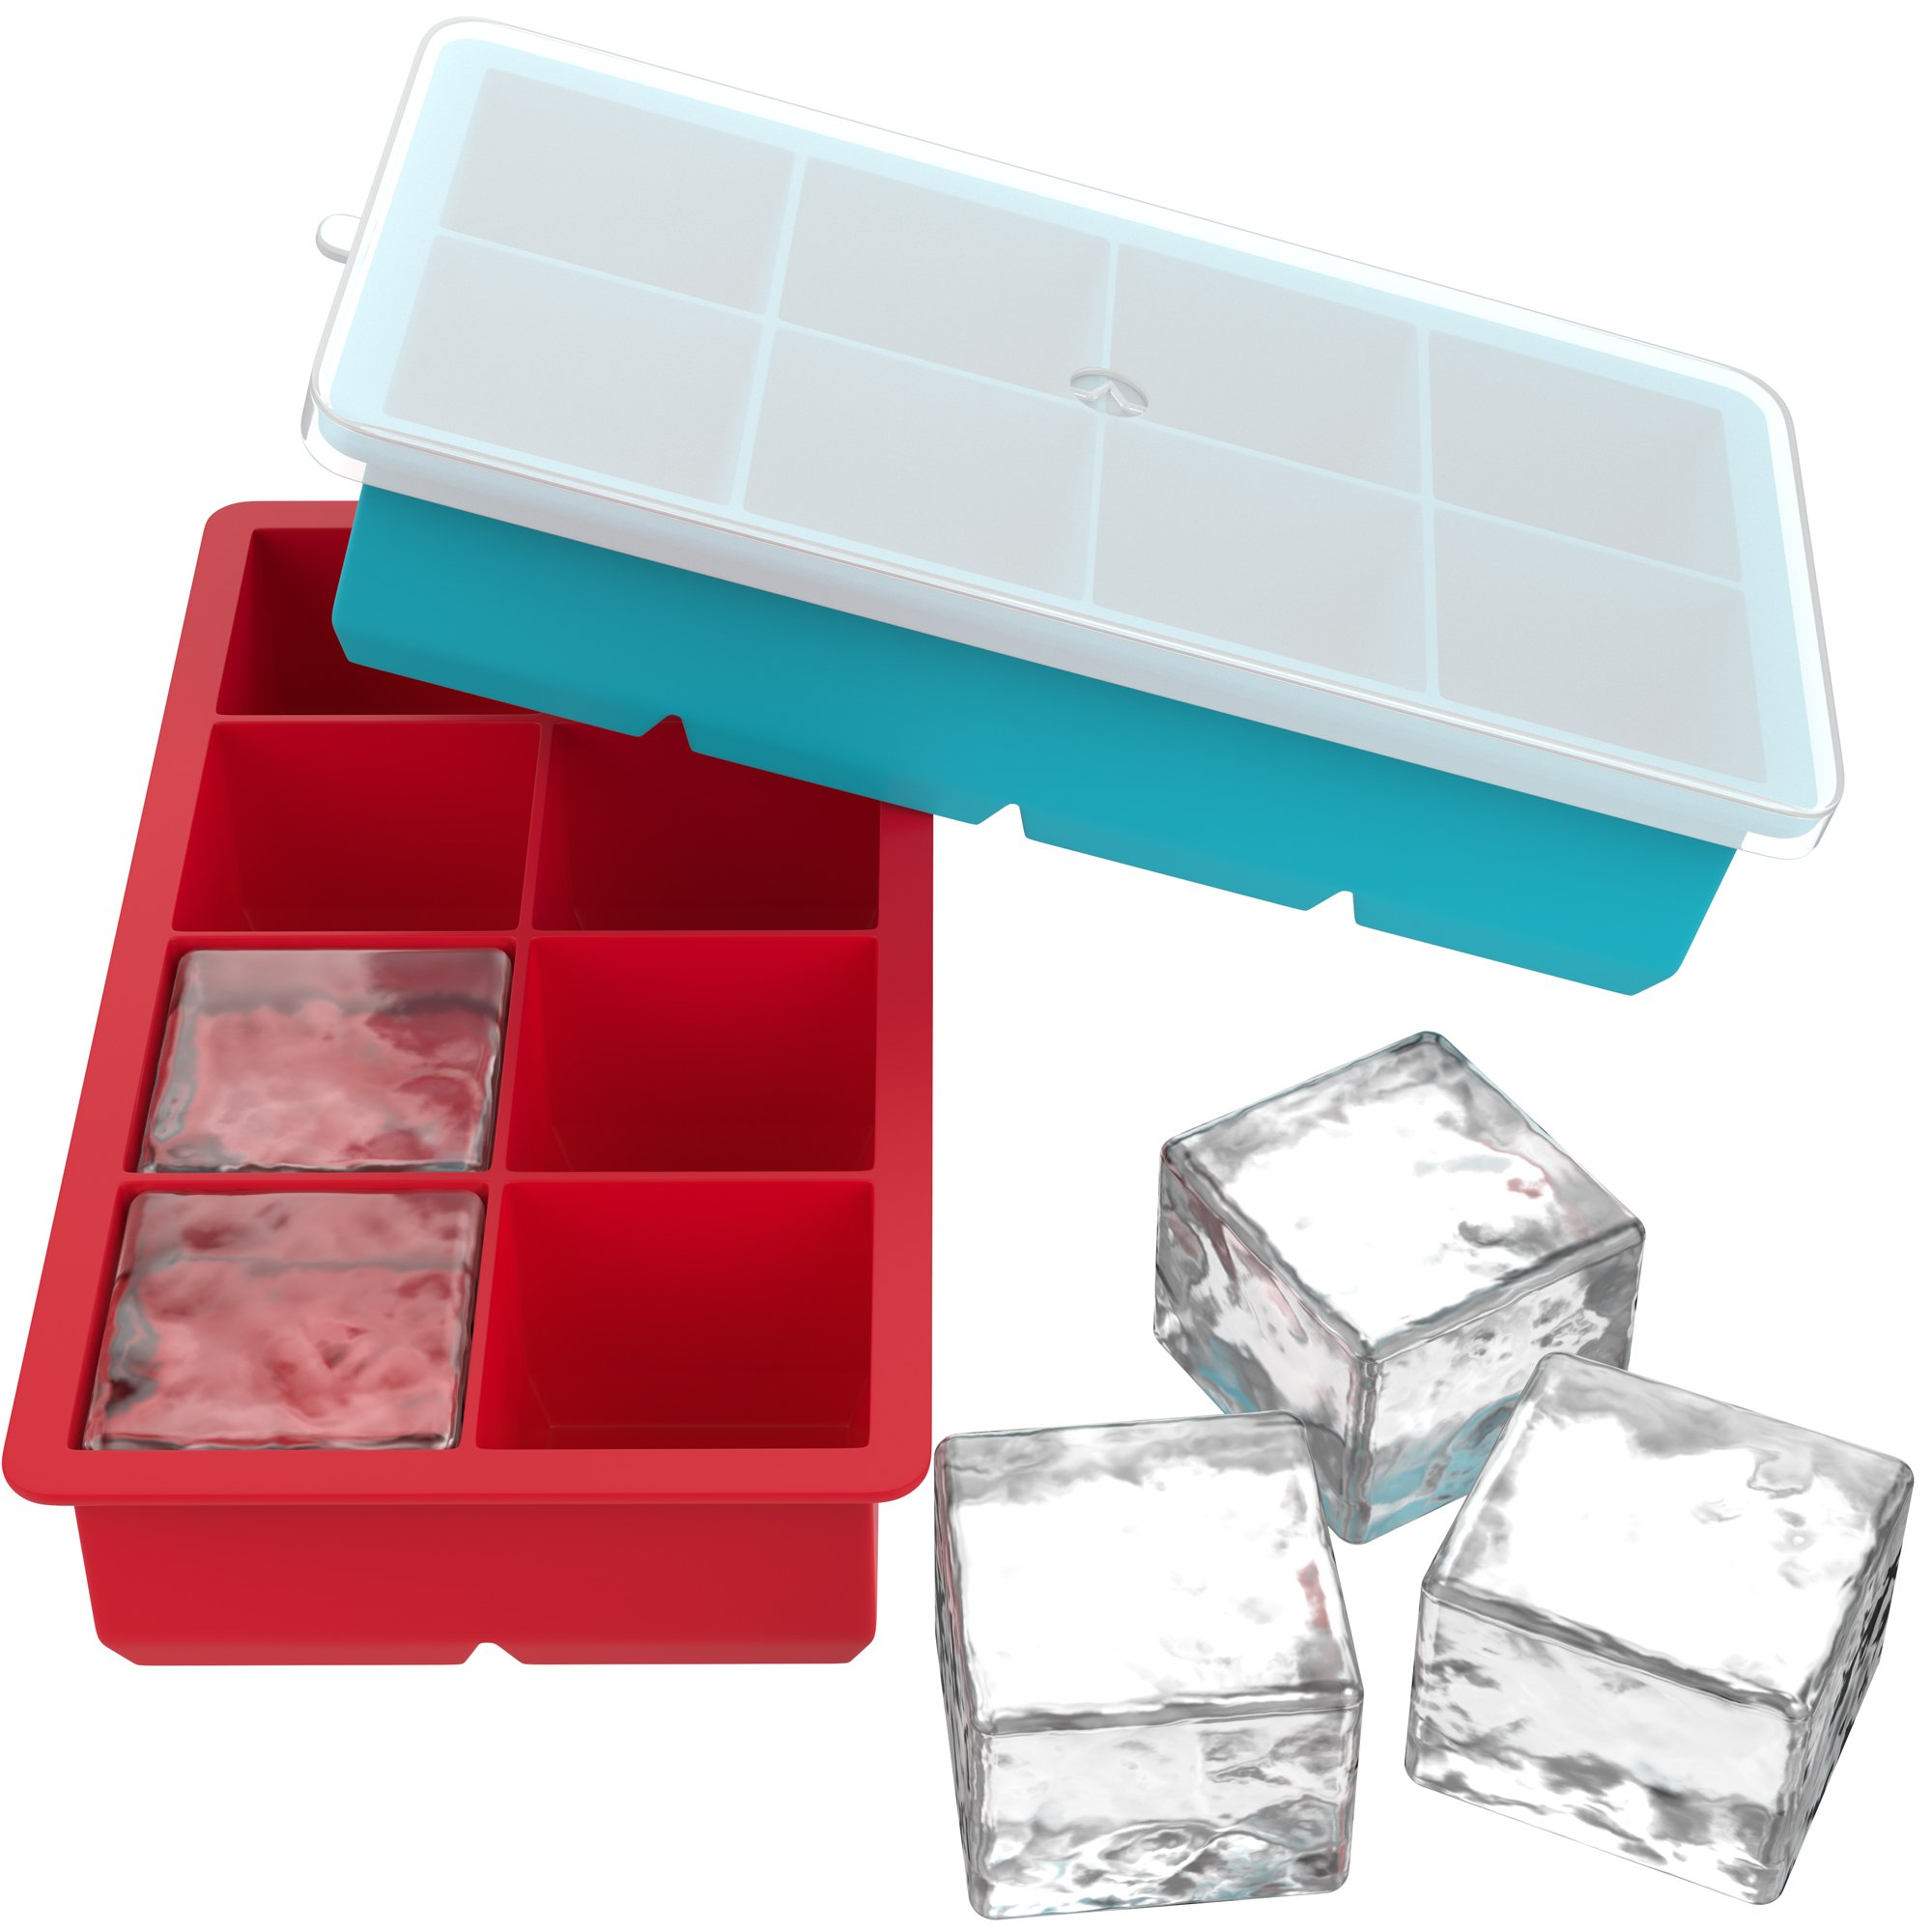 Vremi Large Silicone Ice Cube Trays - 2 Pack 8 Square Cubes per Tray Ideal for Whiskey, Cocktails, Soups, Baby Food and Frozen Treats - Flexible and BPA Free and Includes Covers for Easy Stacking by Vremi